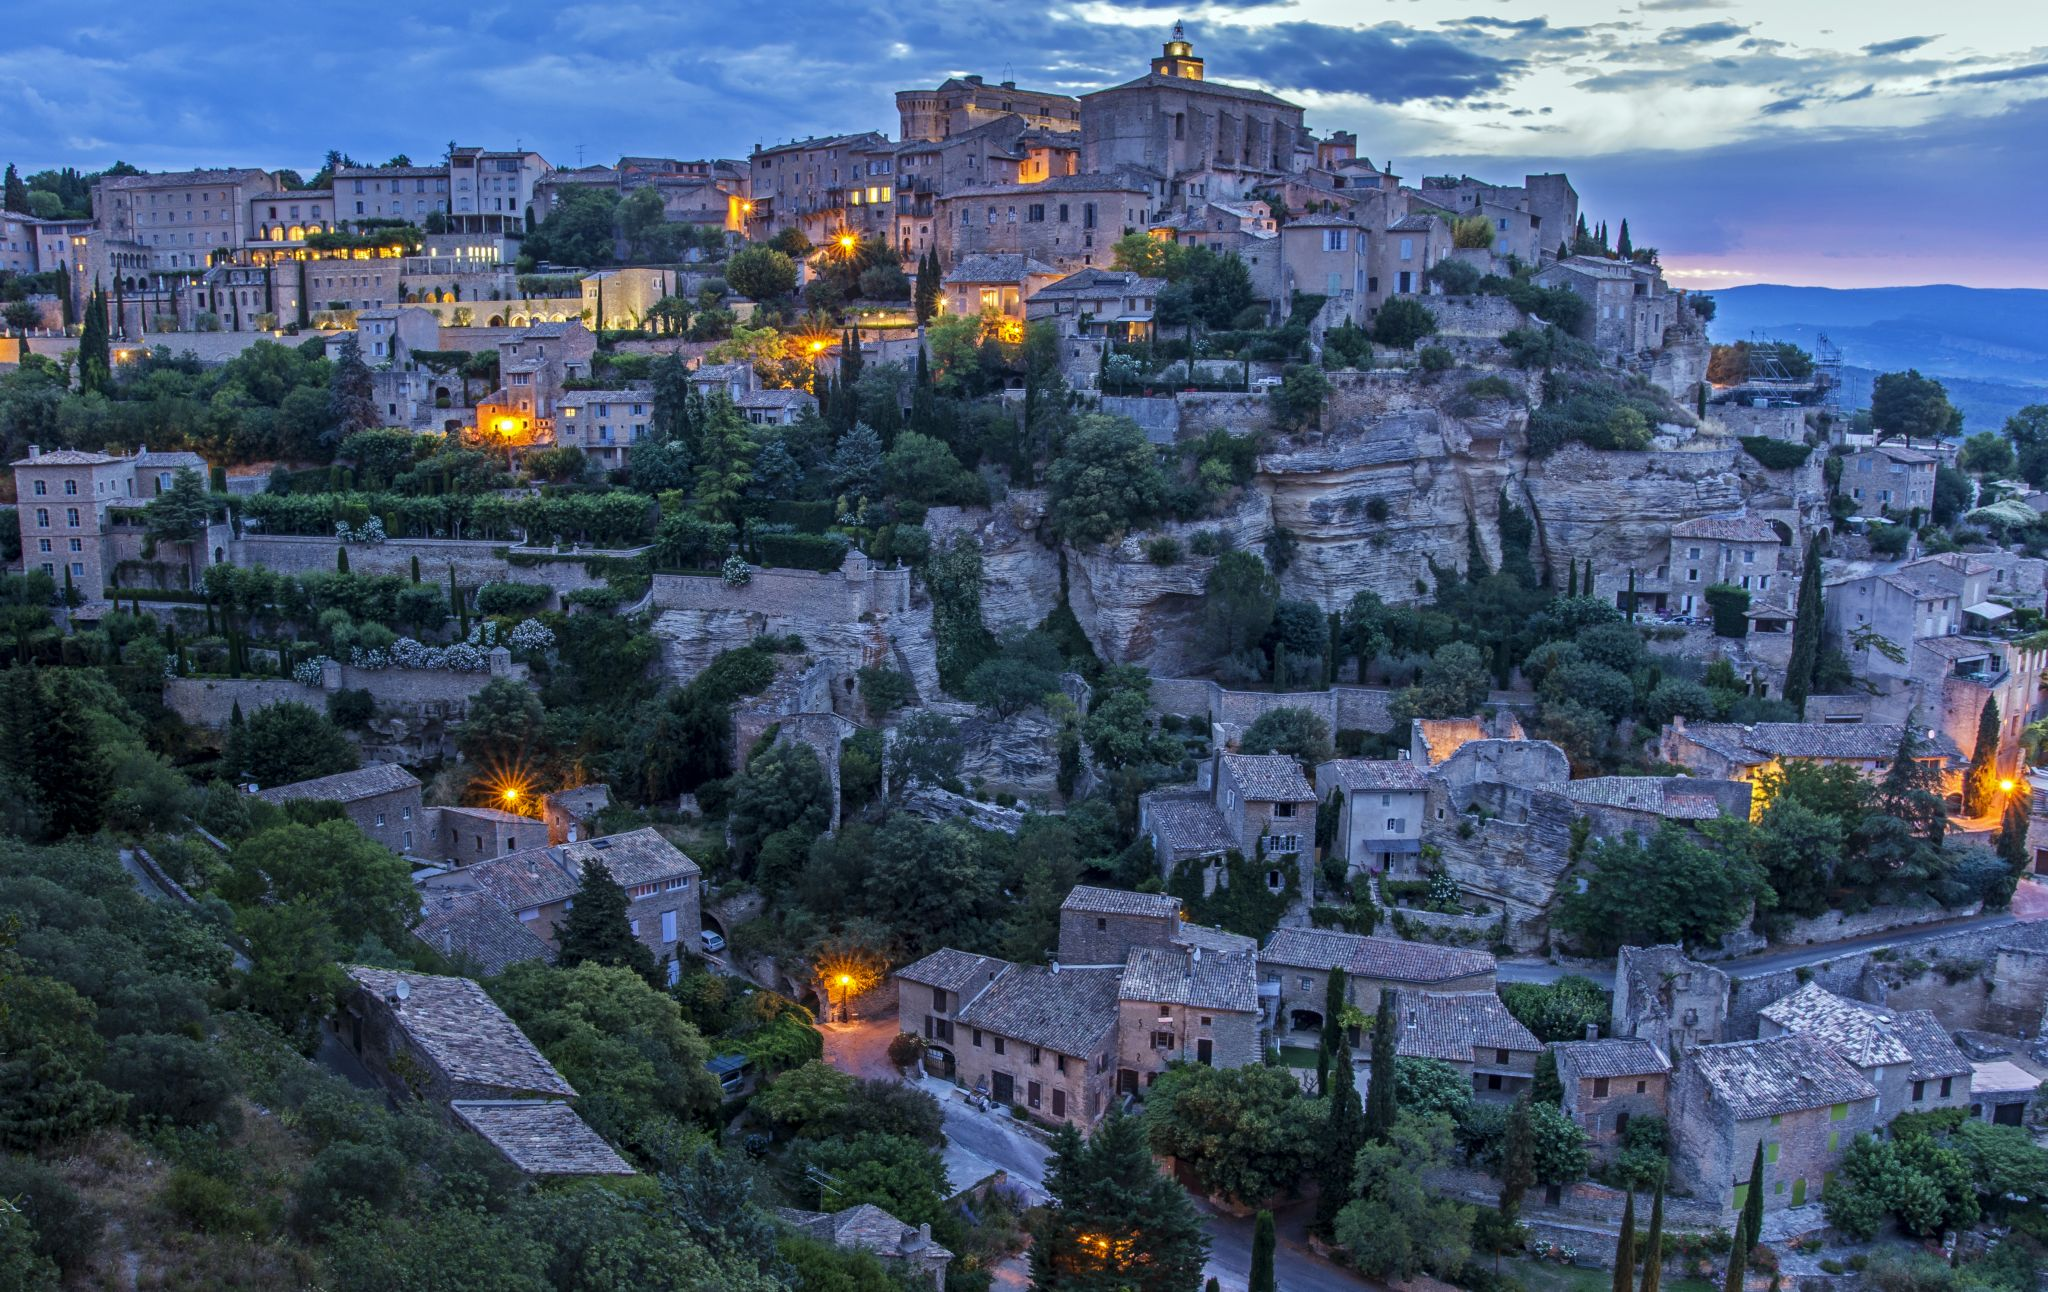 The Beautiful Village of Gordes, France